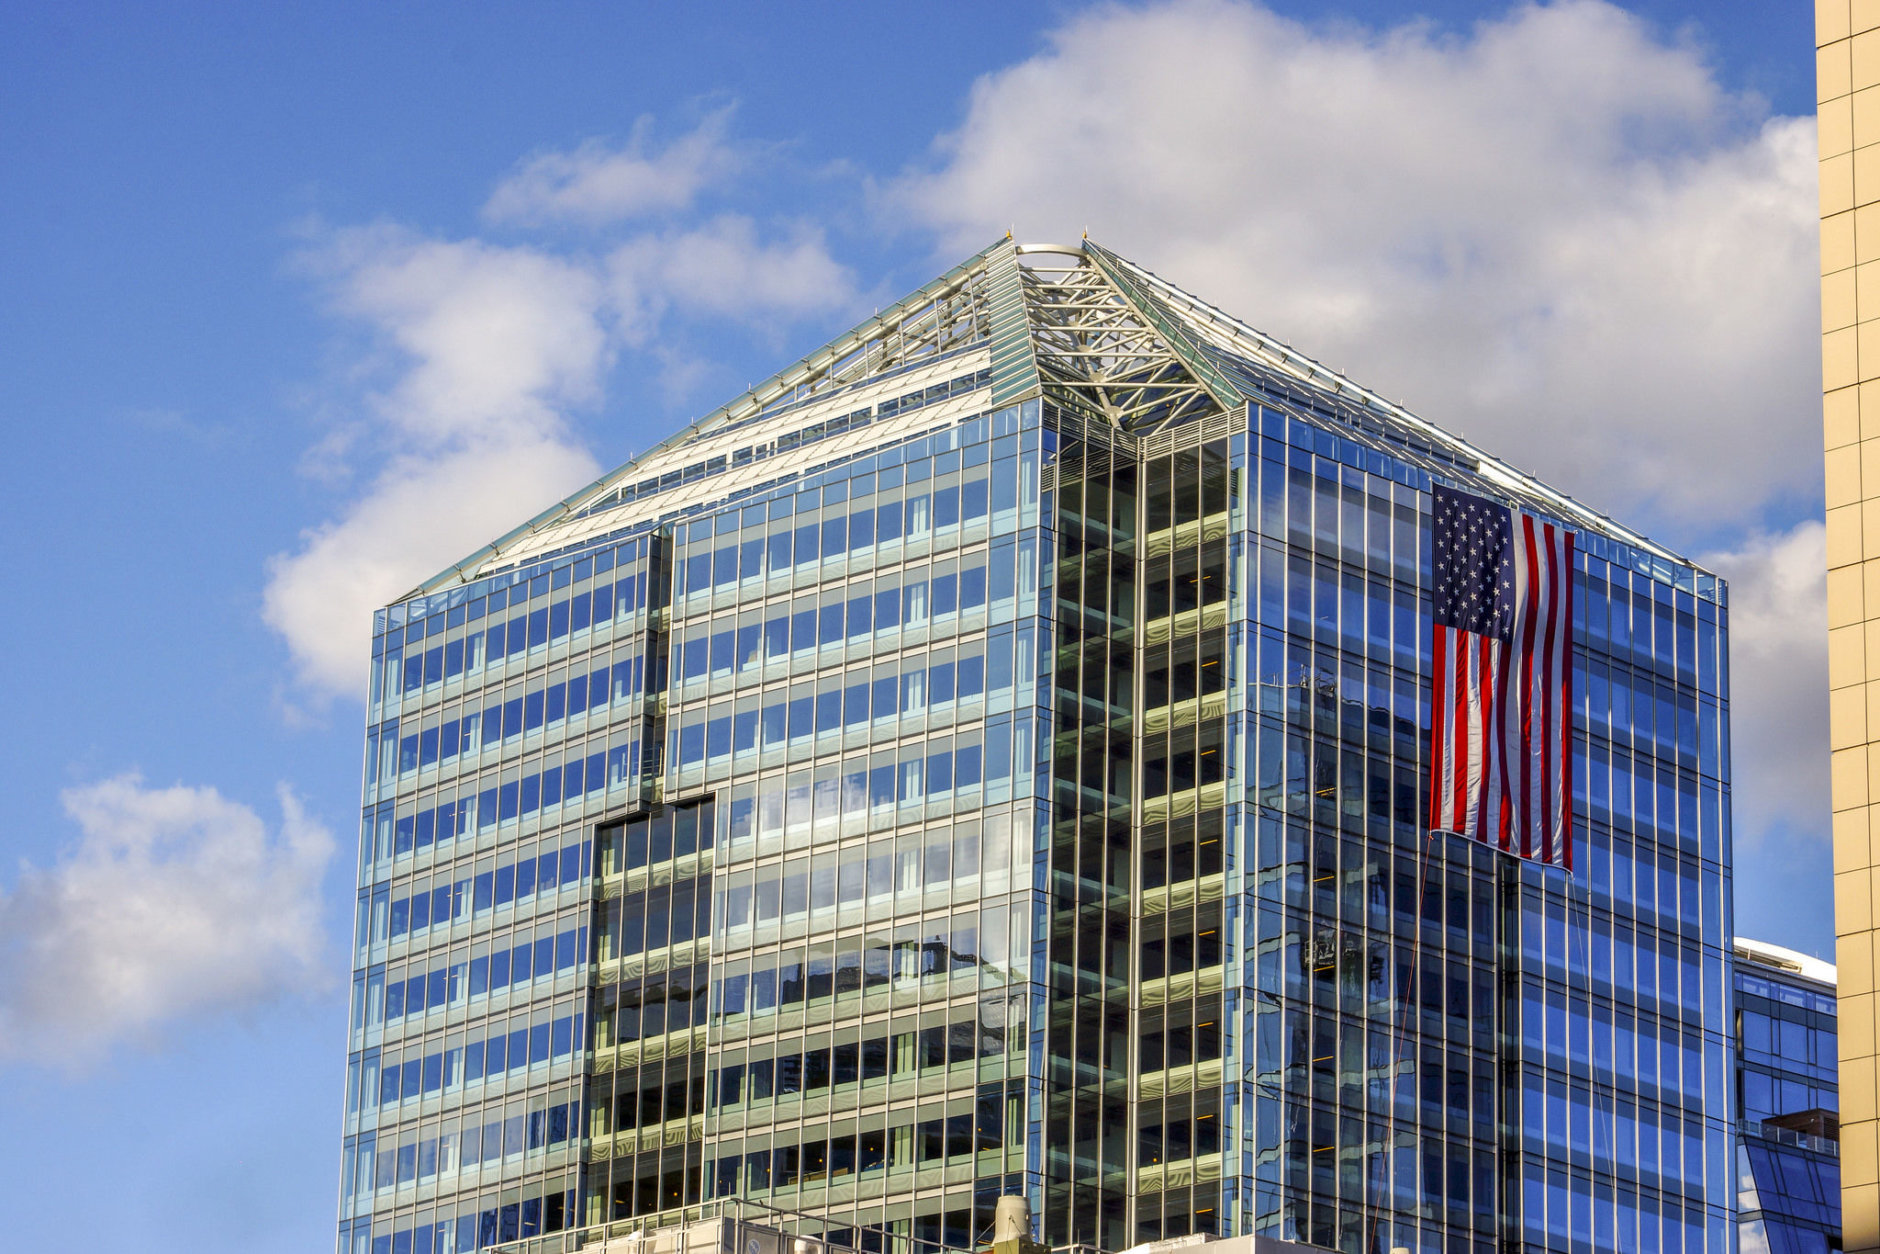 Buildings in Rosslyn displayed the American flag in remembrance of the Sept. 11 terrorist attacks. (Courtesy Rosslyn Business Improvement Department)